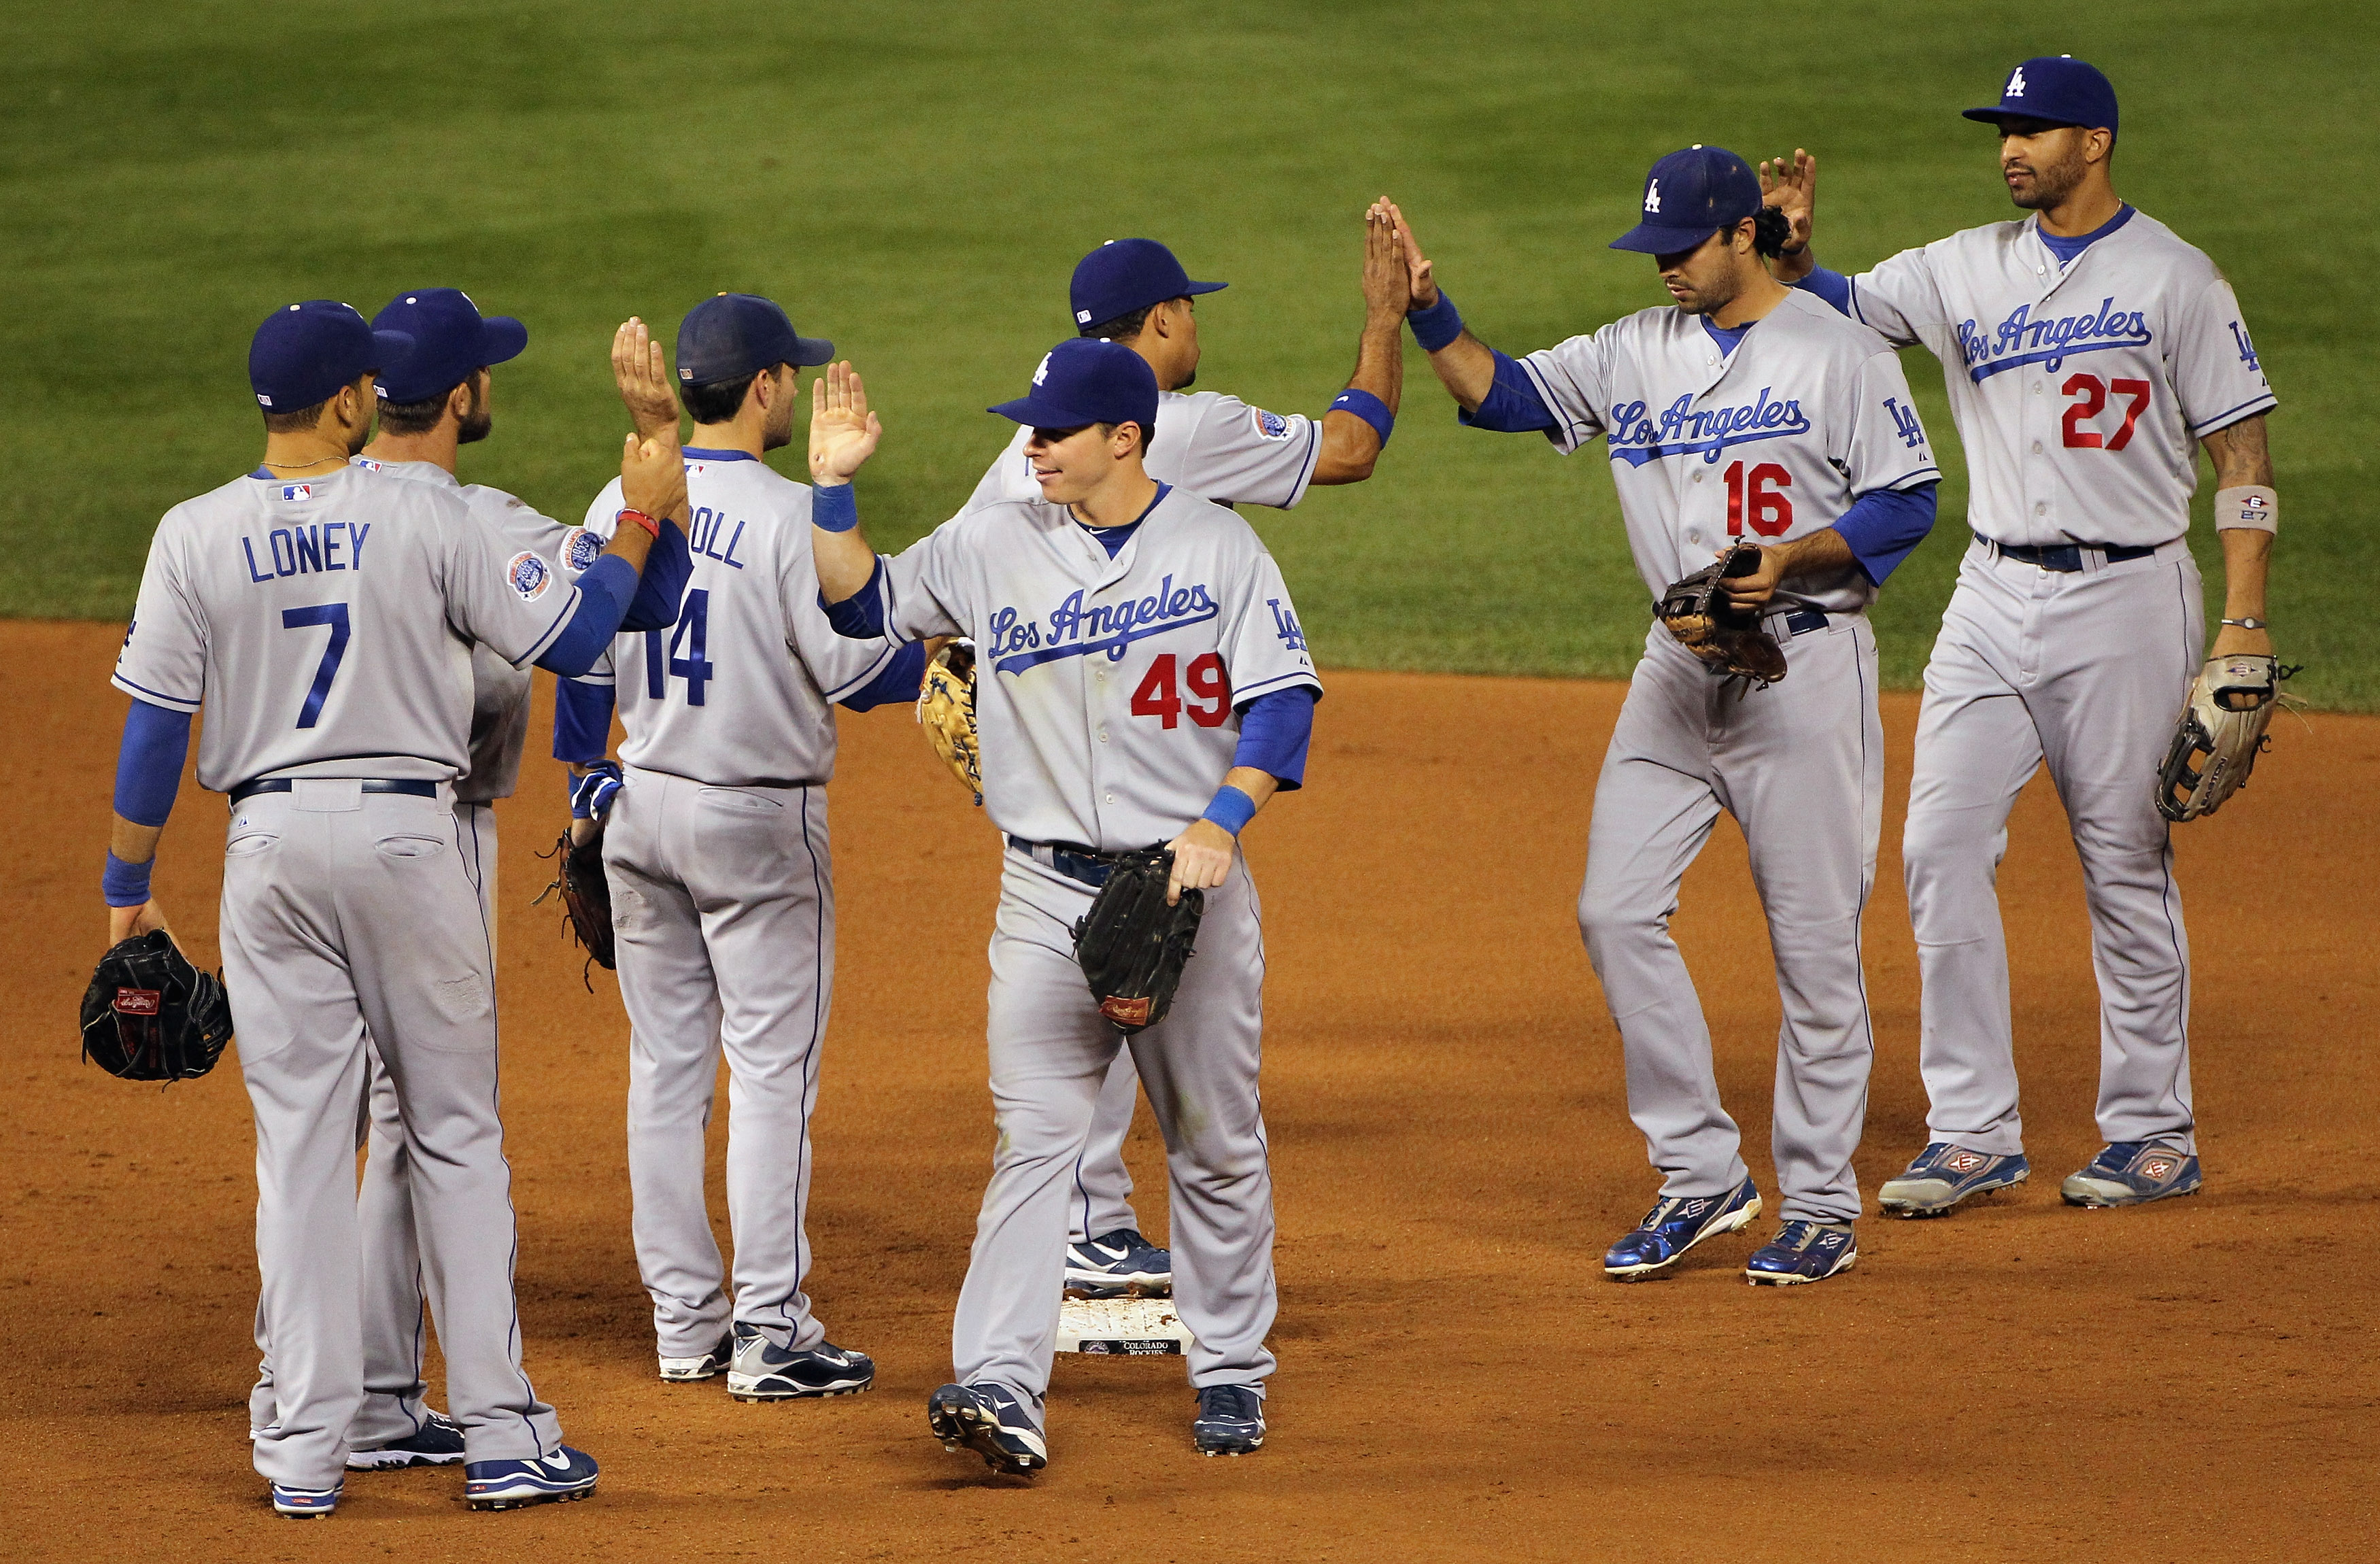 The Dodgers have a nice balance of veterans and youth.  Will it be enough to overcome the rest of the division?